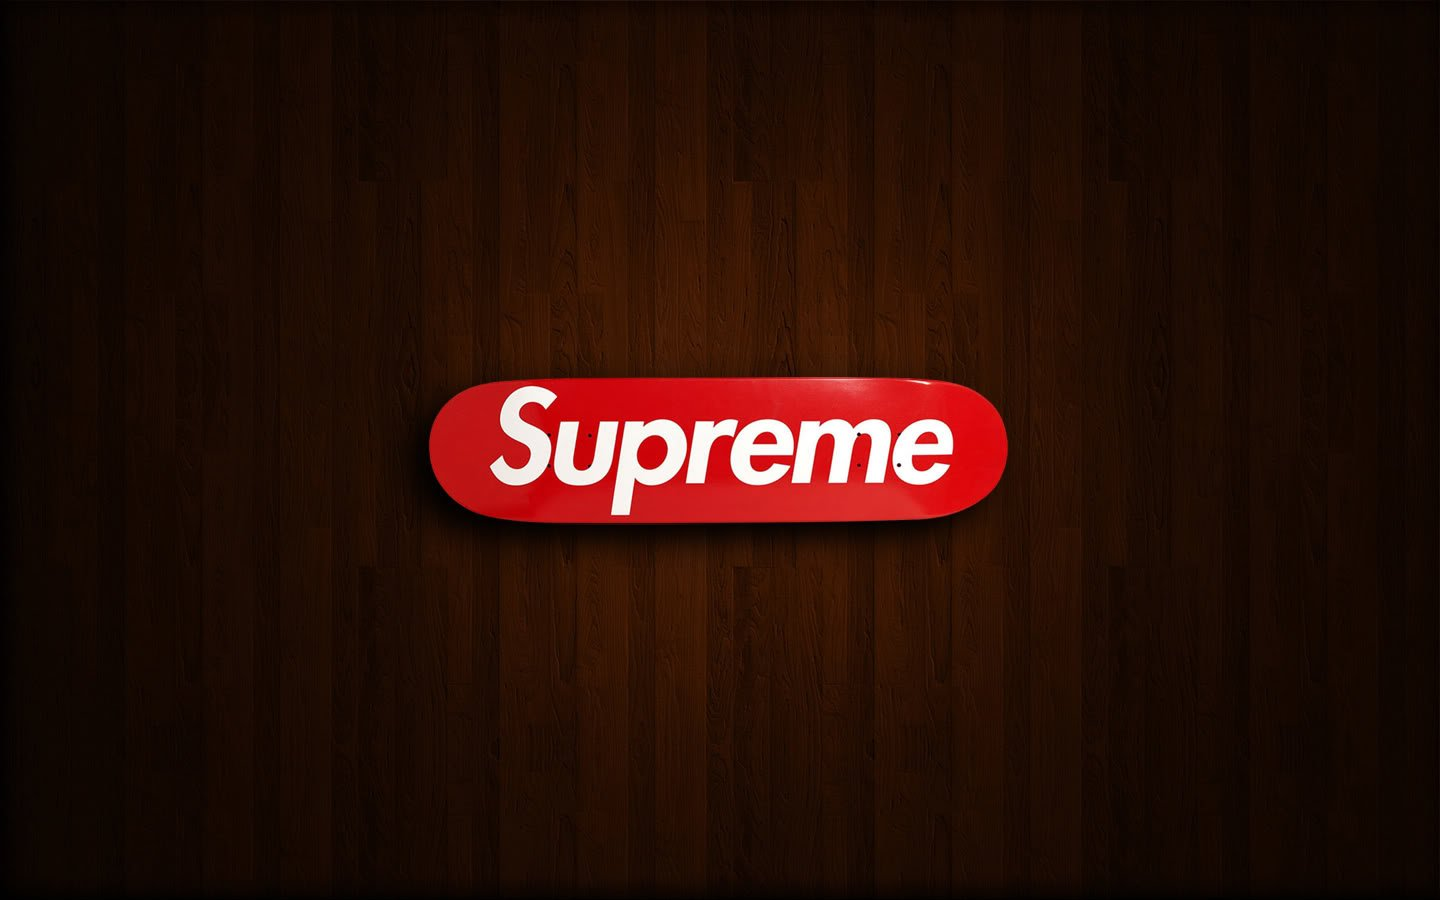 Supreme Wallpaper Tumblr Supreme tumblr background 1440x900